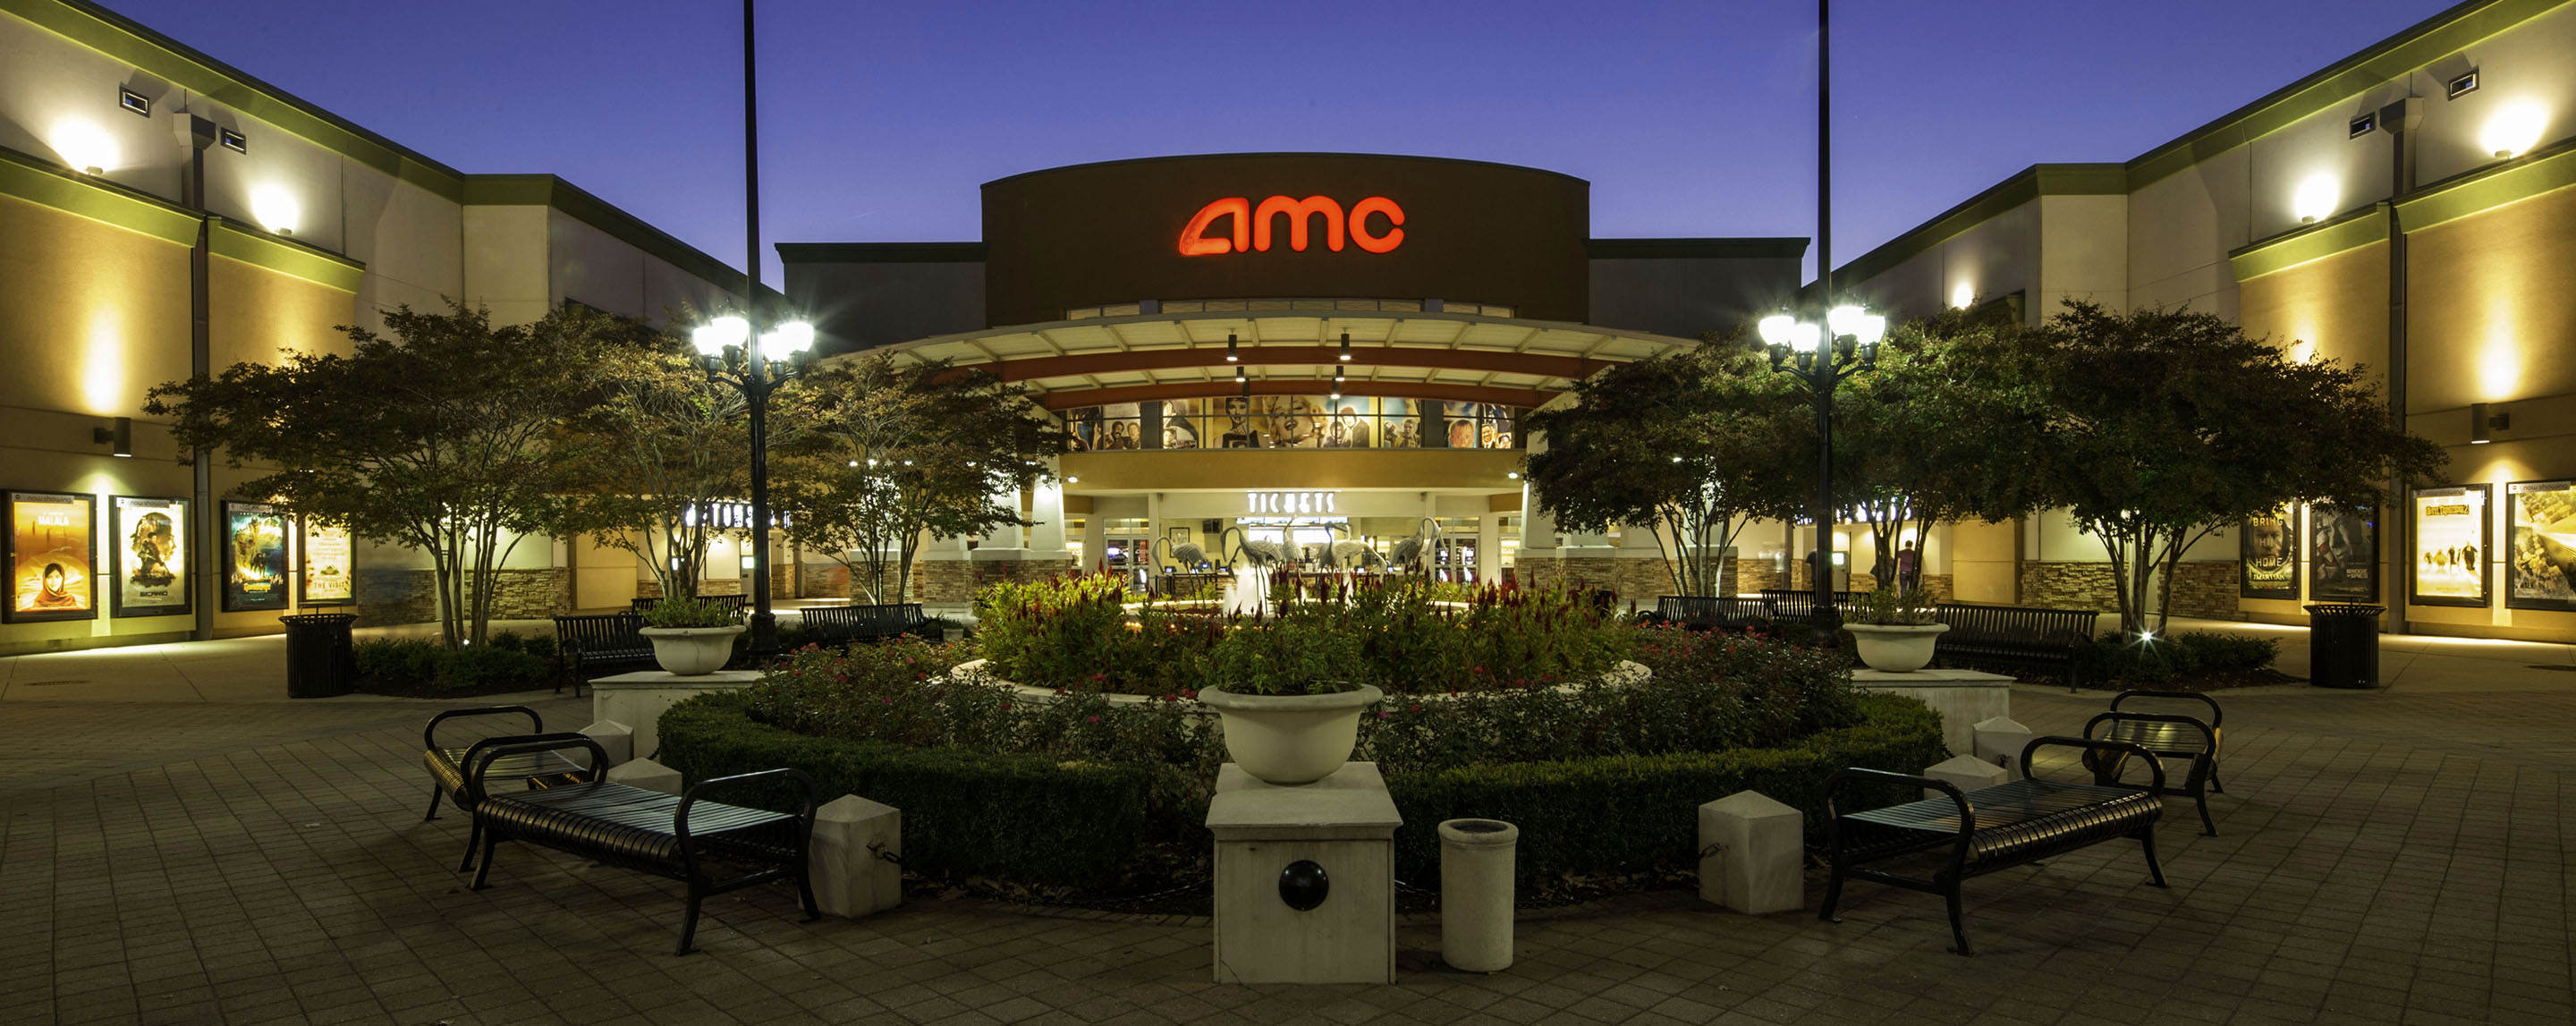 A courtyard with benches is in front of a large building that says amc on the front.